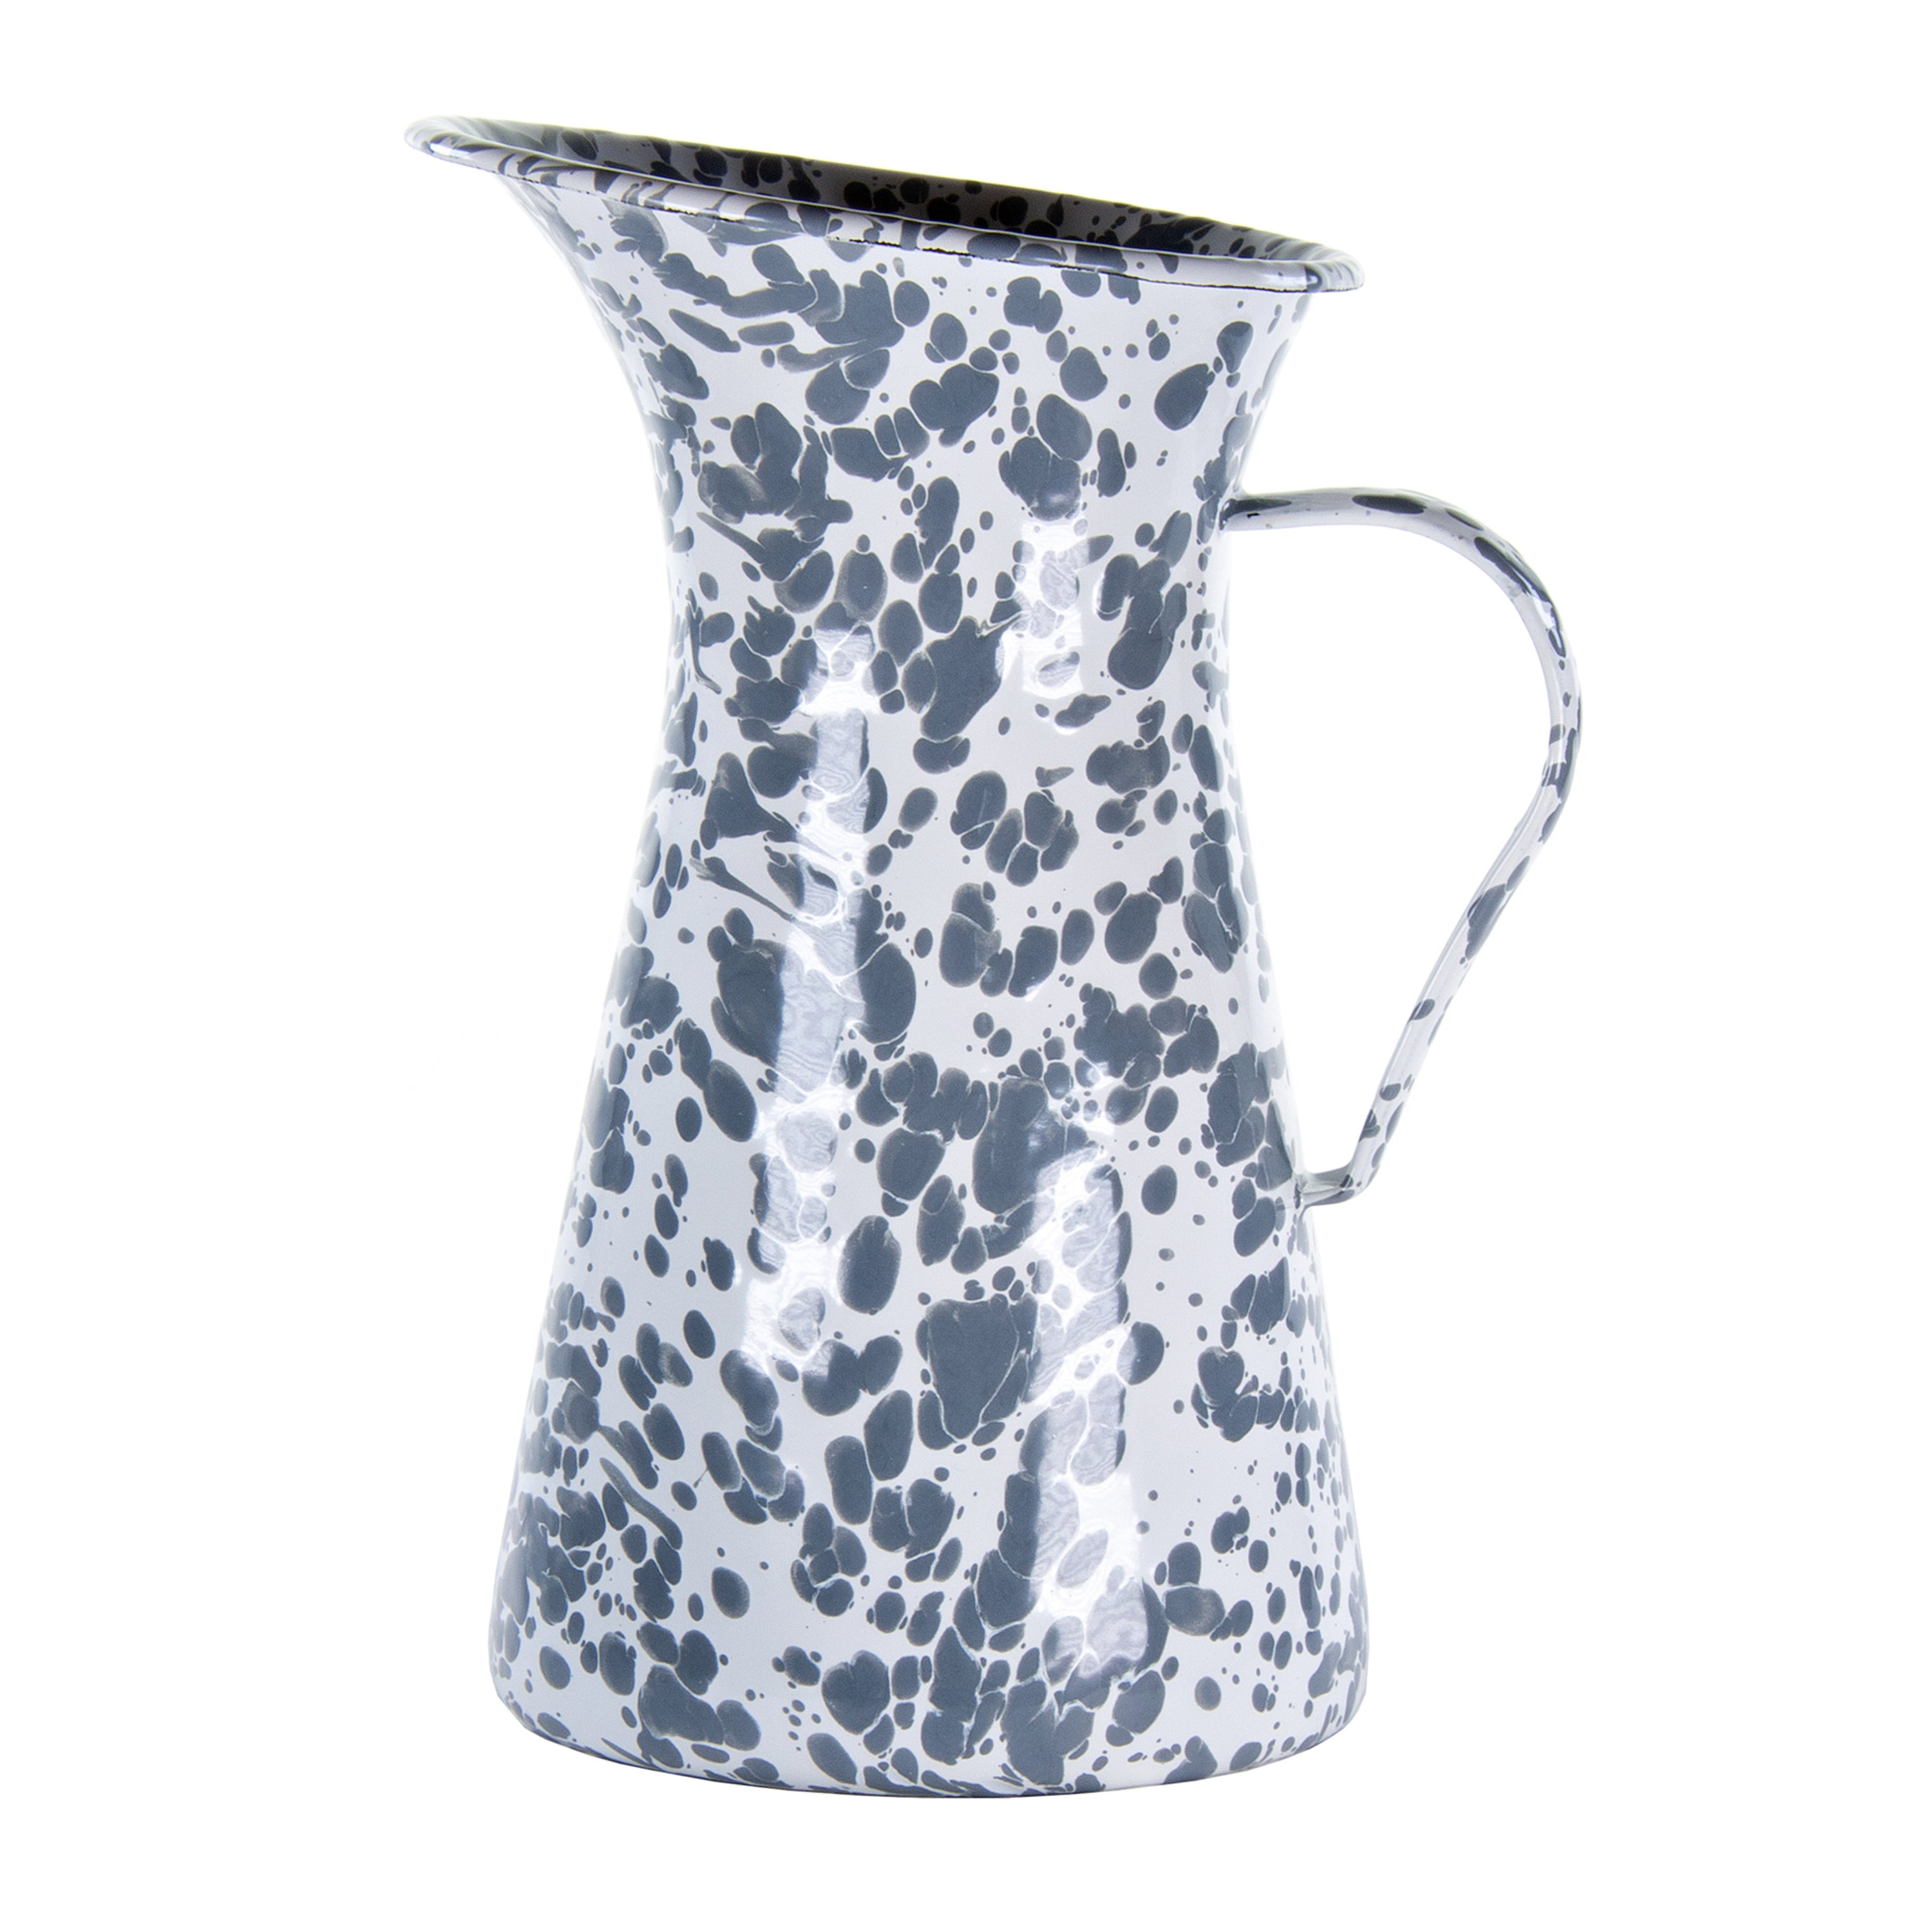 GY63 - Grey Swirl Medium Pitcher Product 1